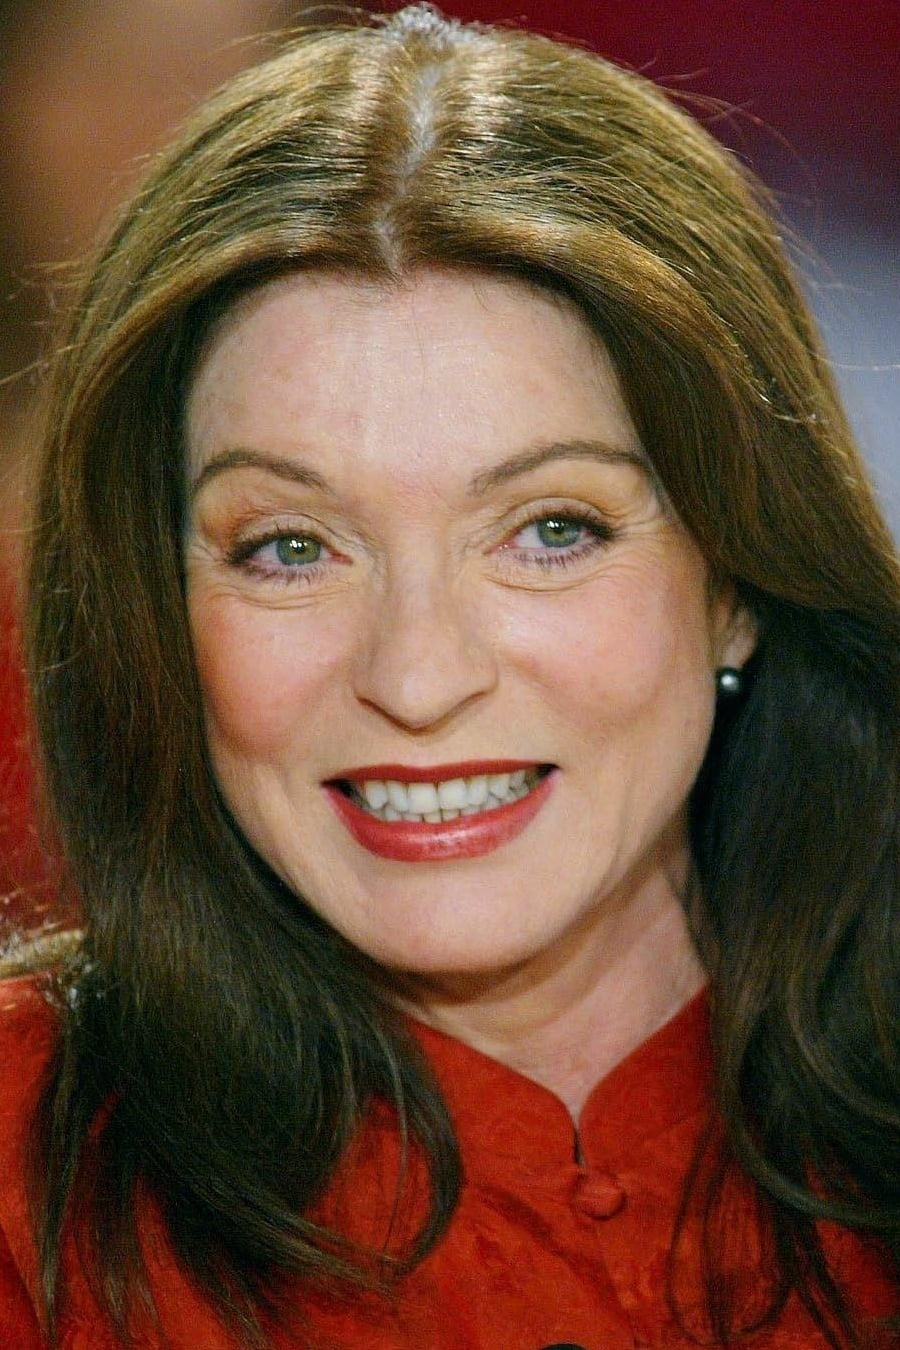 Celebrities who died young images Marie-France Pisier (10